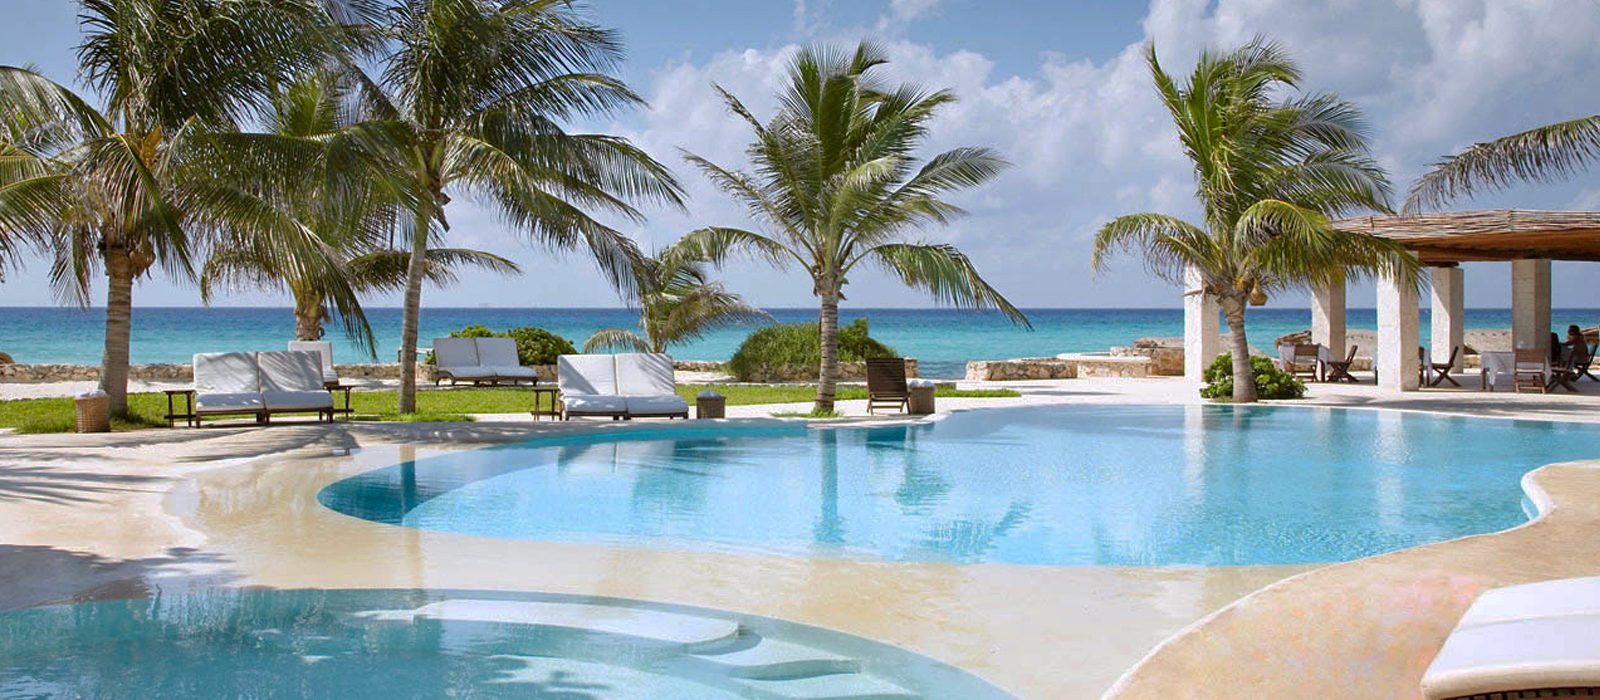 Luxury Mexico Holiday Packages Viceroy Riviera Maya Mexico Header